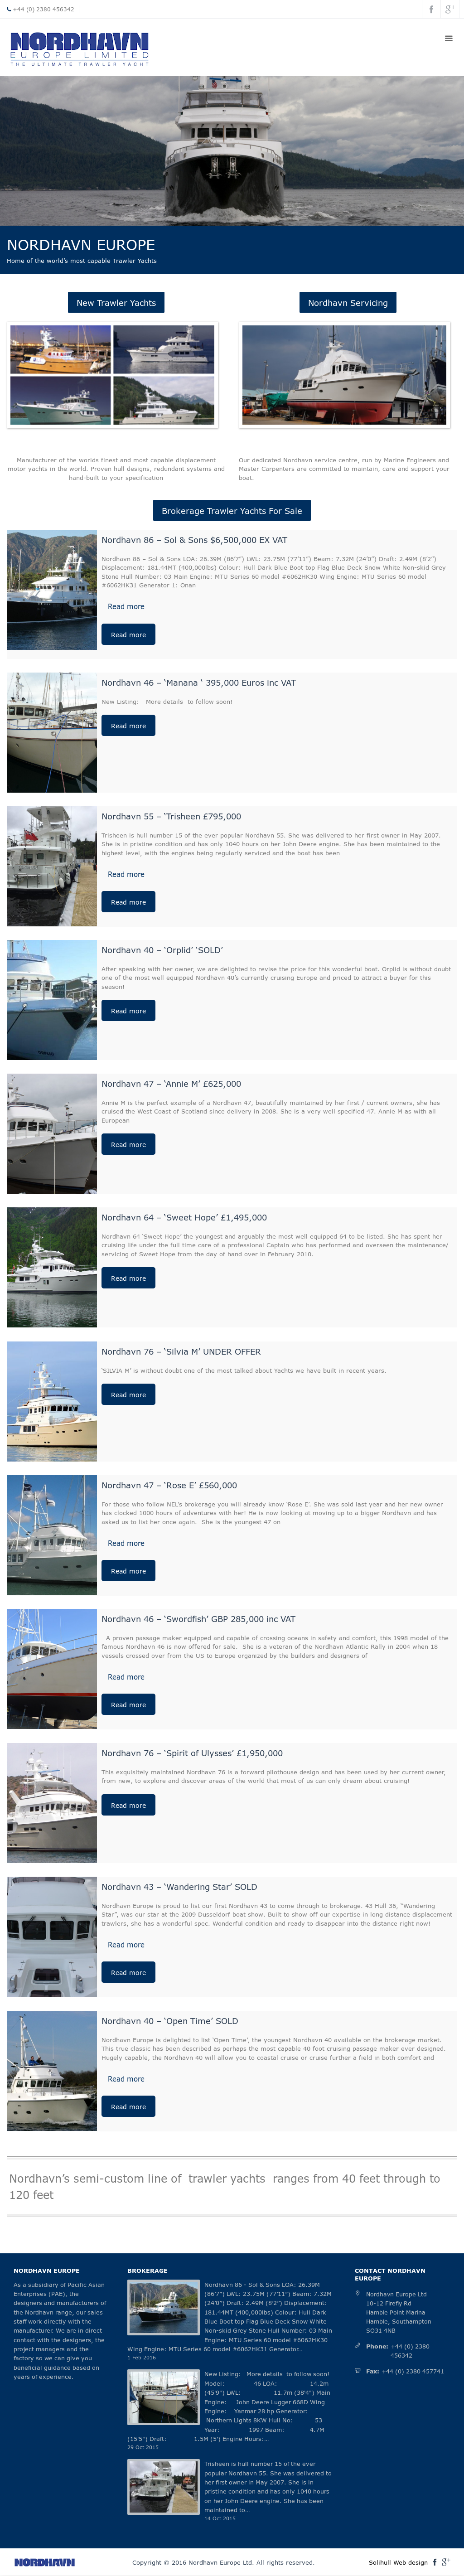 Nordhavn Europe Competitors, Revenue and Employees - Owler